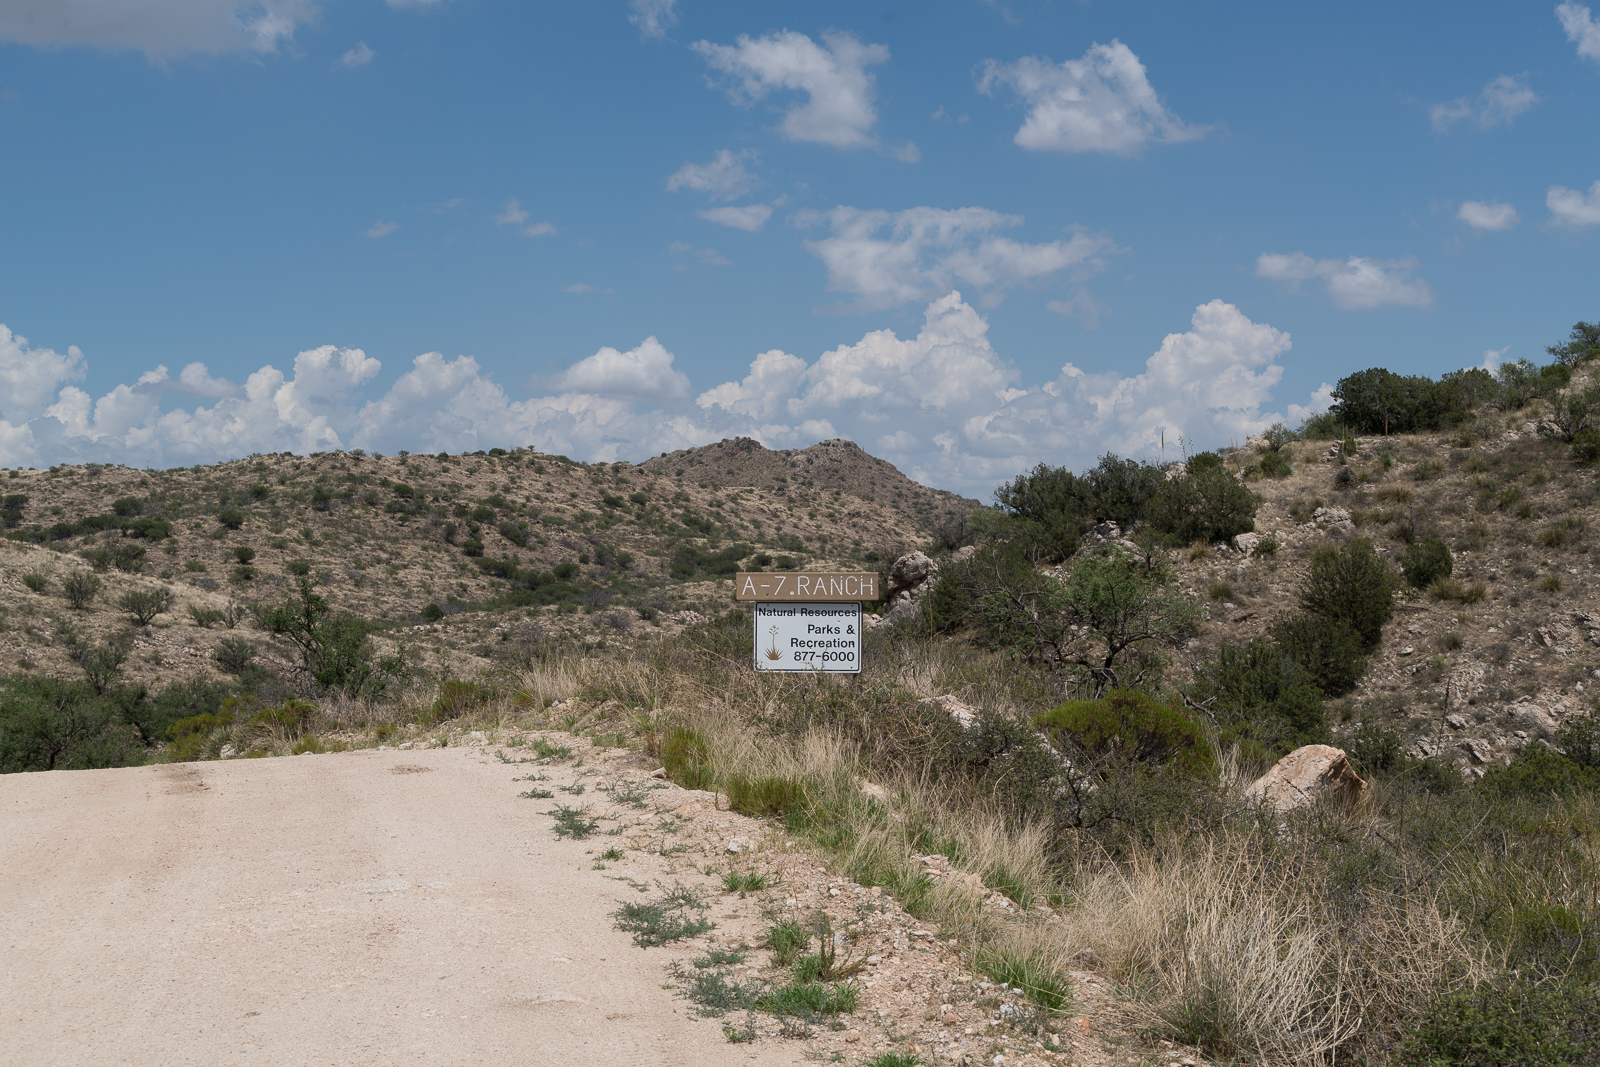 A sign on Redington Road marking the boundary of Pima County's A-7 Ranch. July 2016.